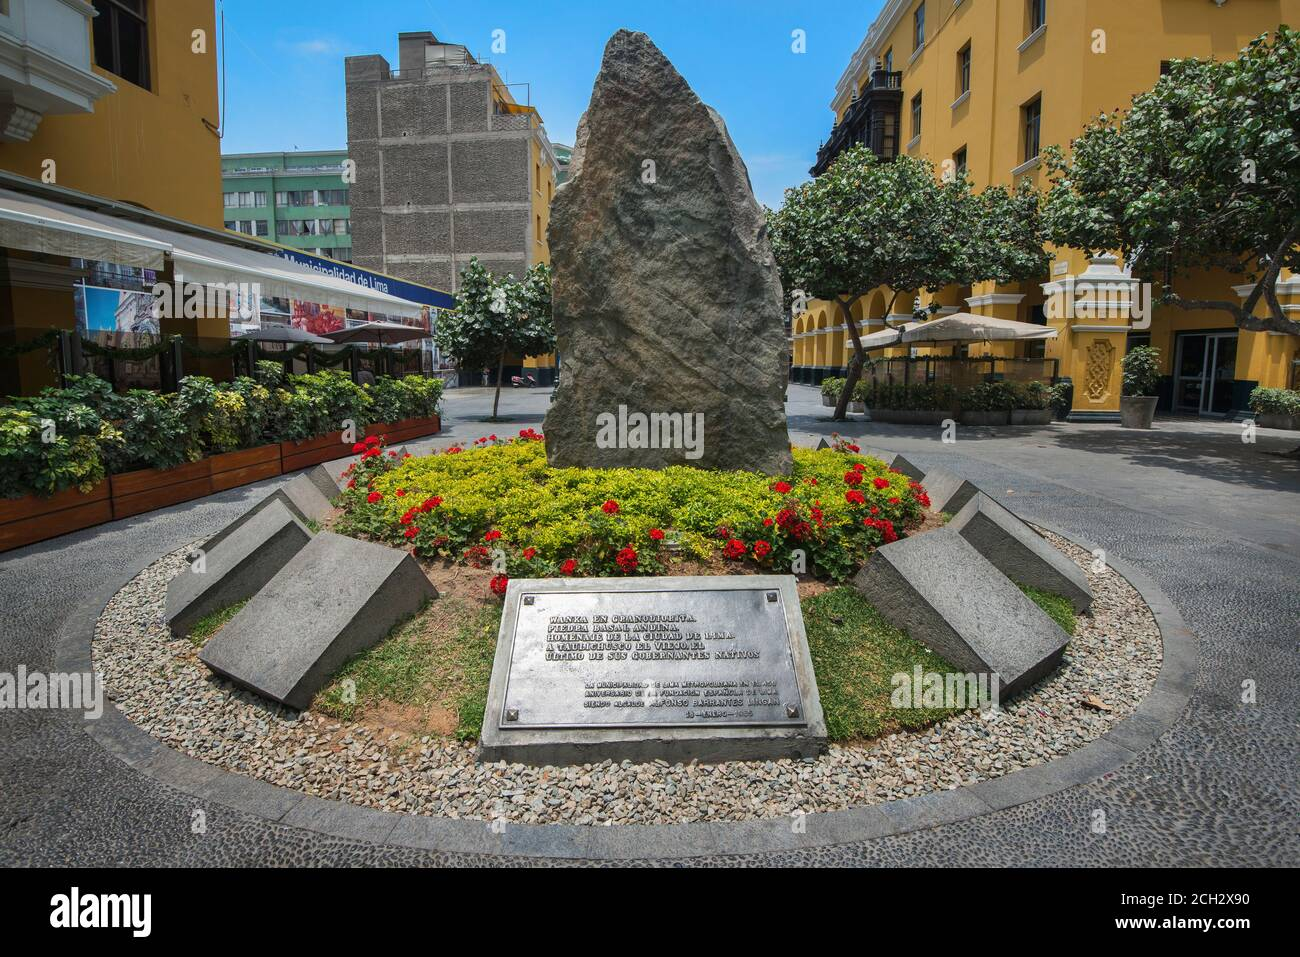 Monument to Taulichusco (the last of its native rulers) is a monolith of Andean basal stone in Lima, Peru Stock Photo